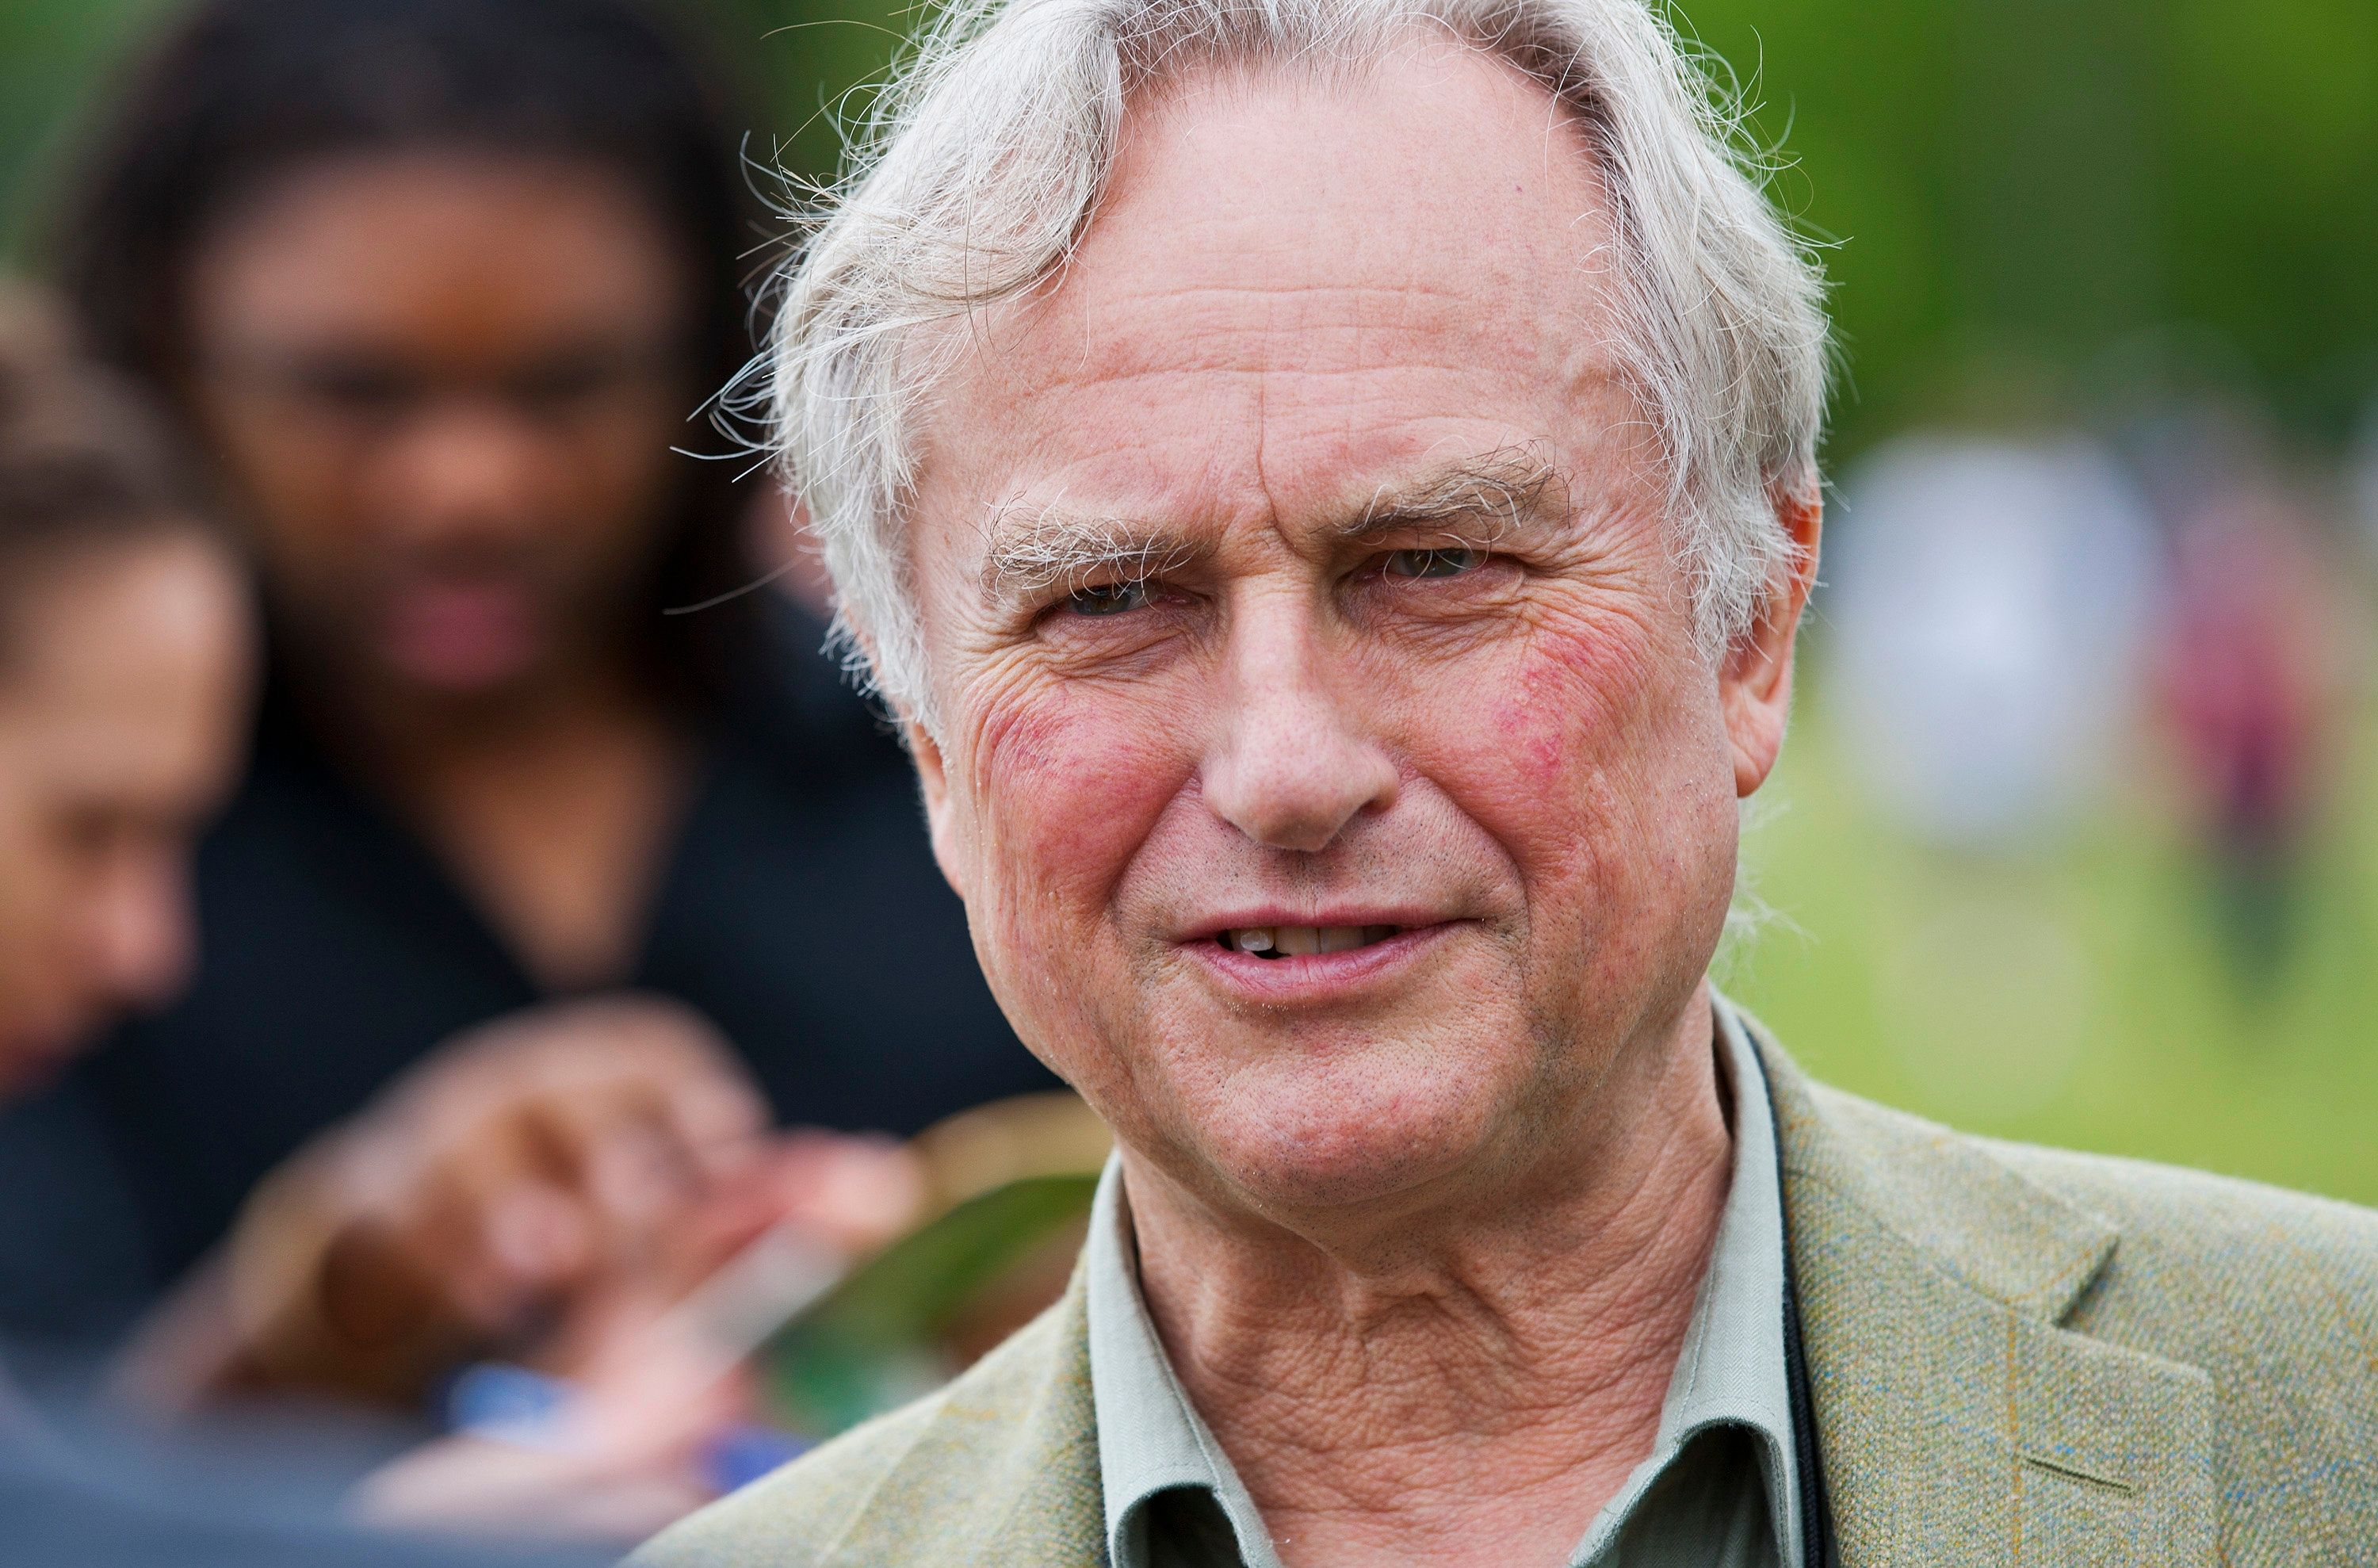 Richard Dawkins Is Still Tweeting About Islam And It's Not Going Very Well For